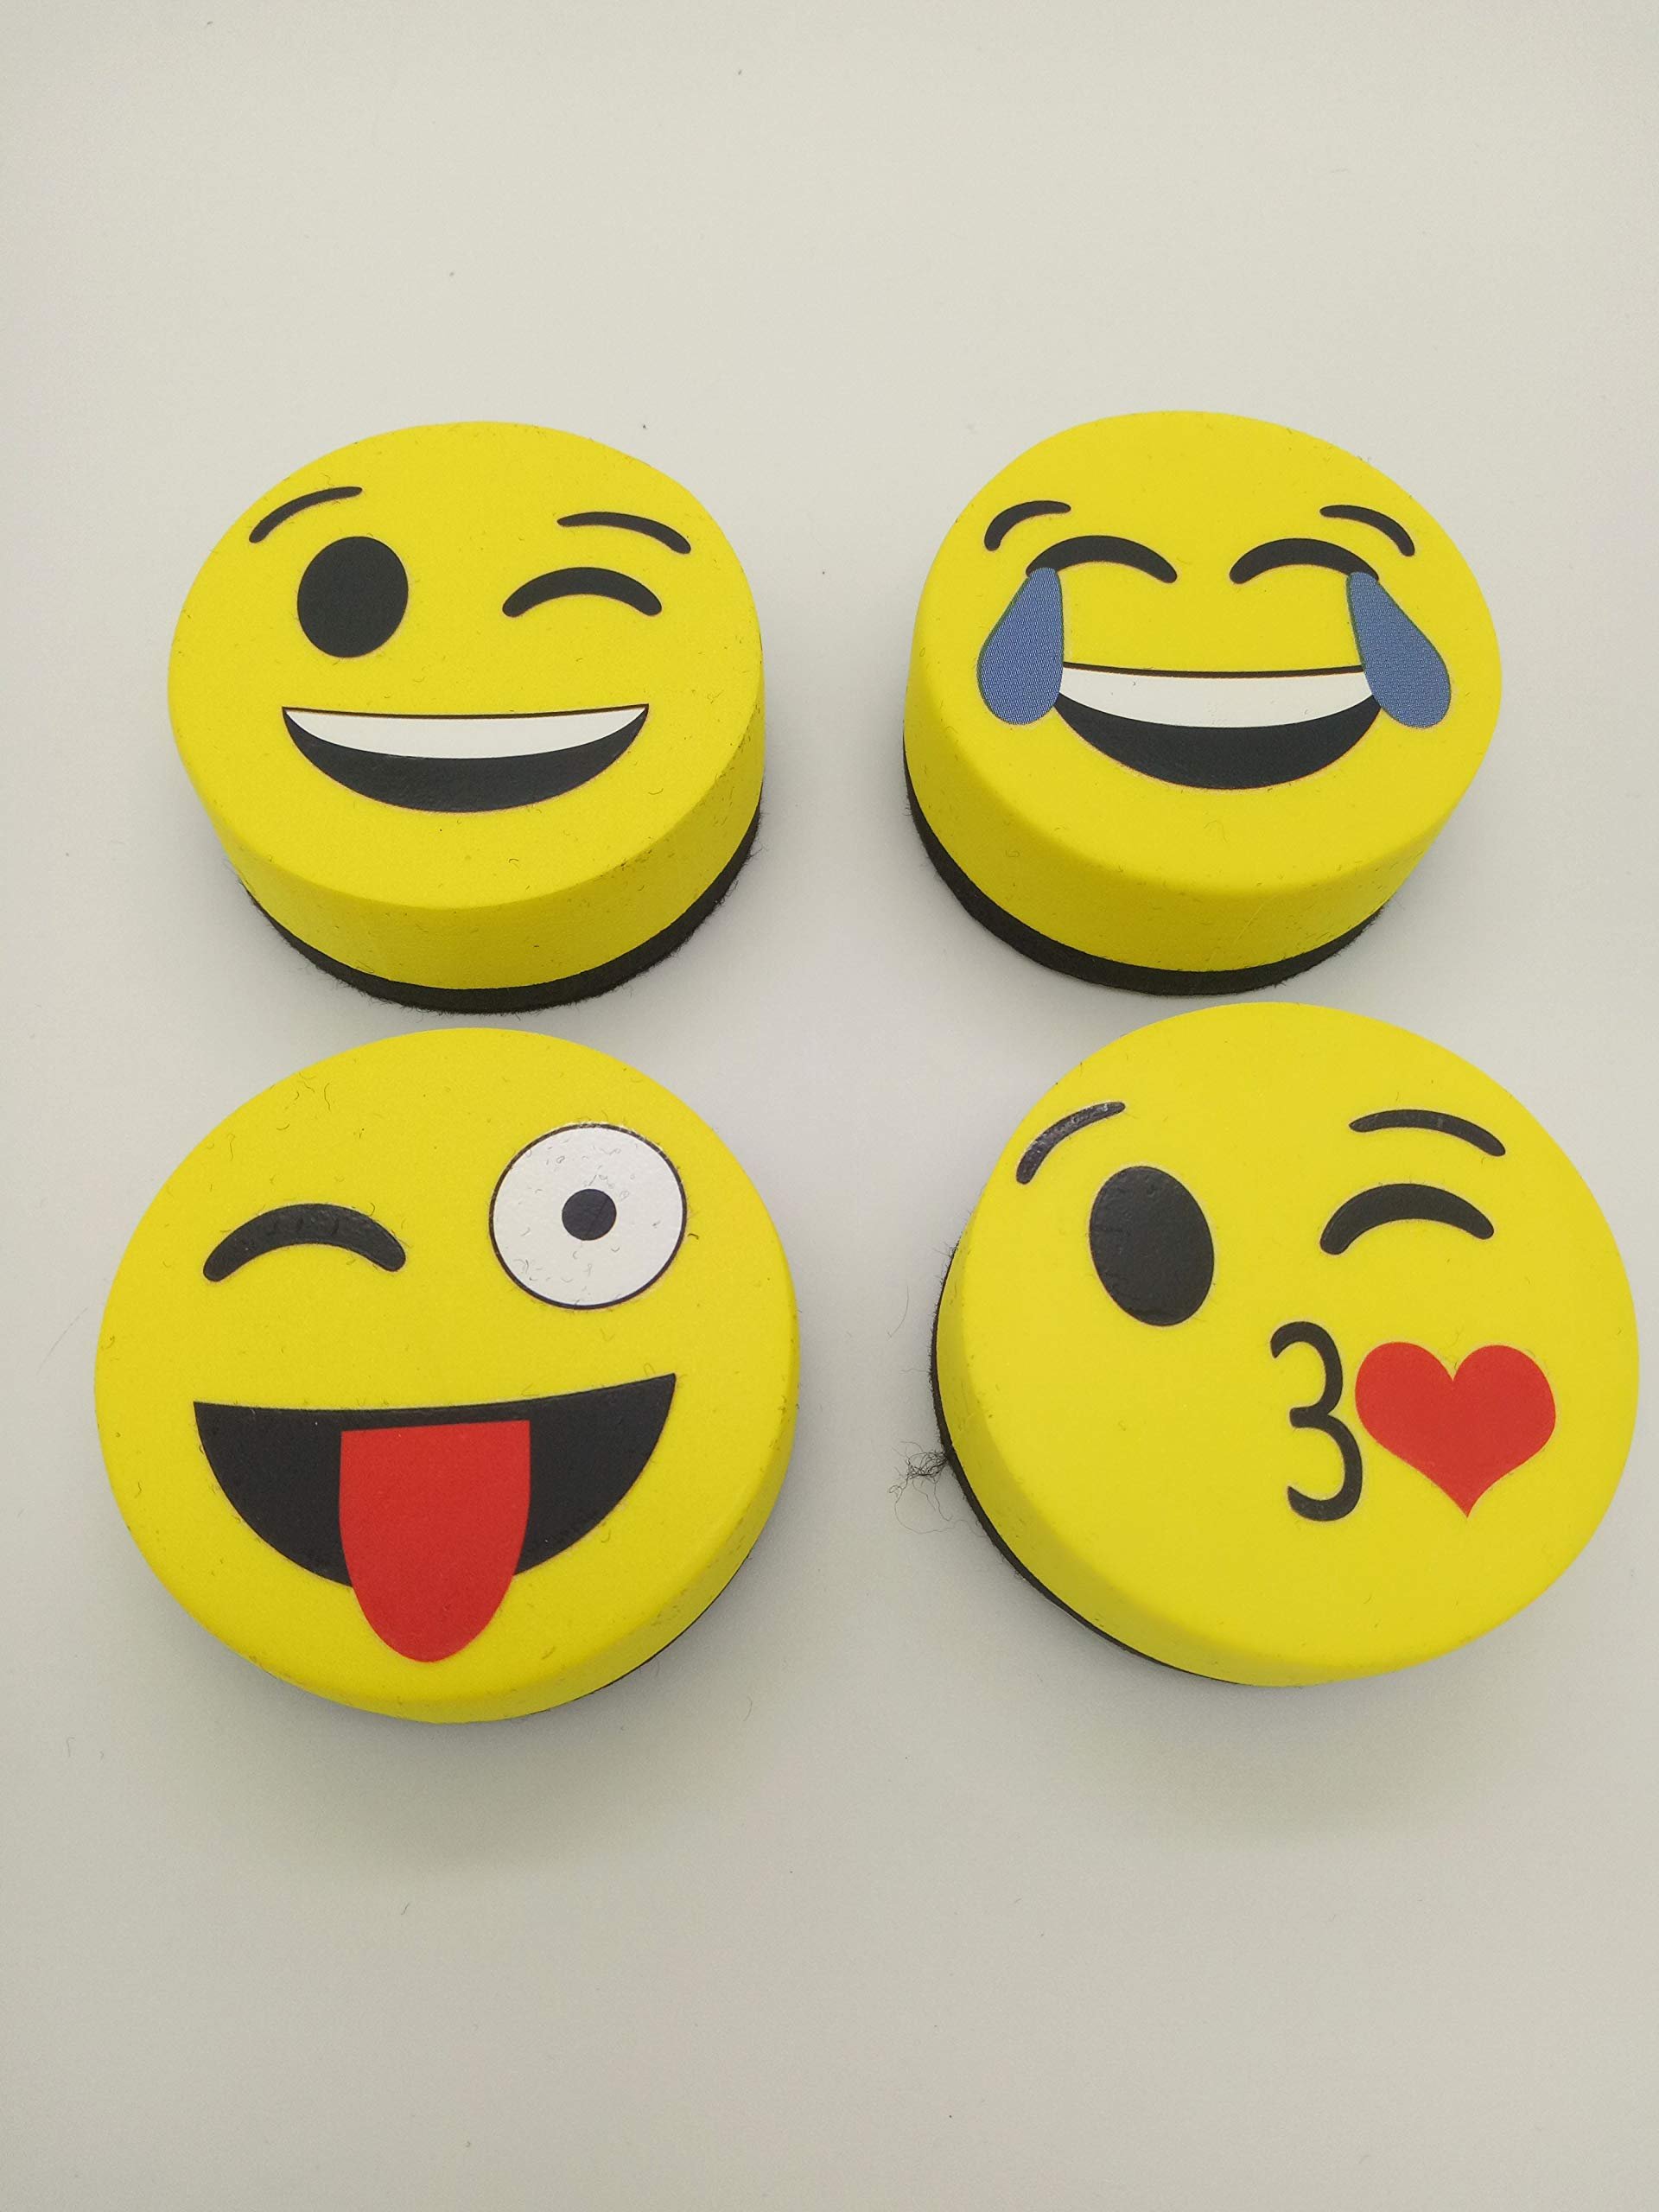 Yellow Magnetic Smiley Face Circular Whiteboard Eraser - Used to Home, Office and School Classroom (16 Pack) (16 Pcs)